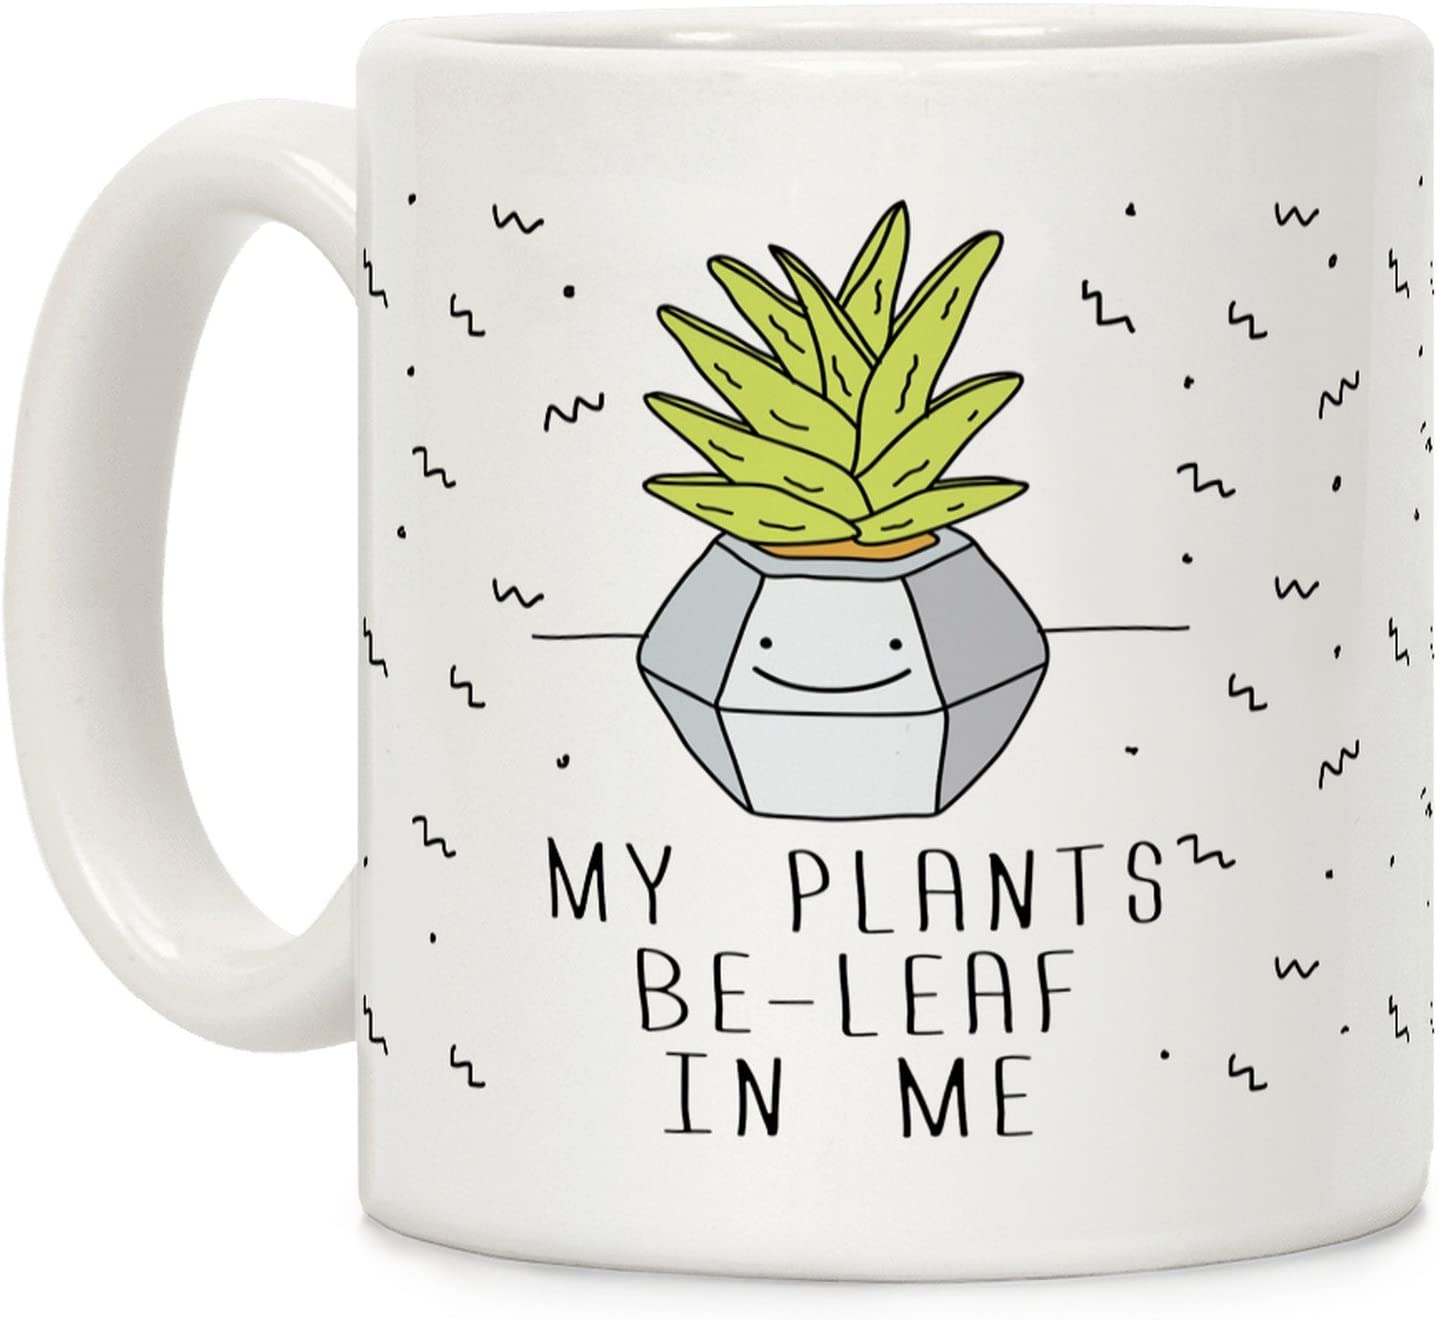 "A white mug printed with a cactus plant in a pot and quoted ""My plants be-leaf in me"""